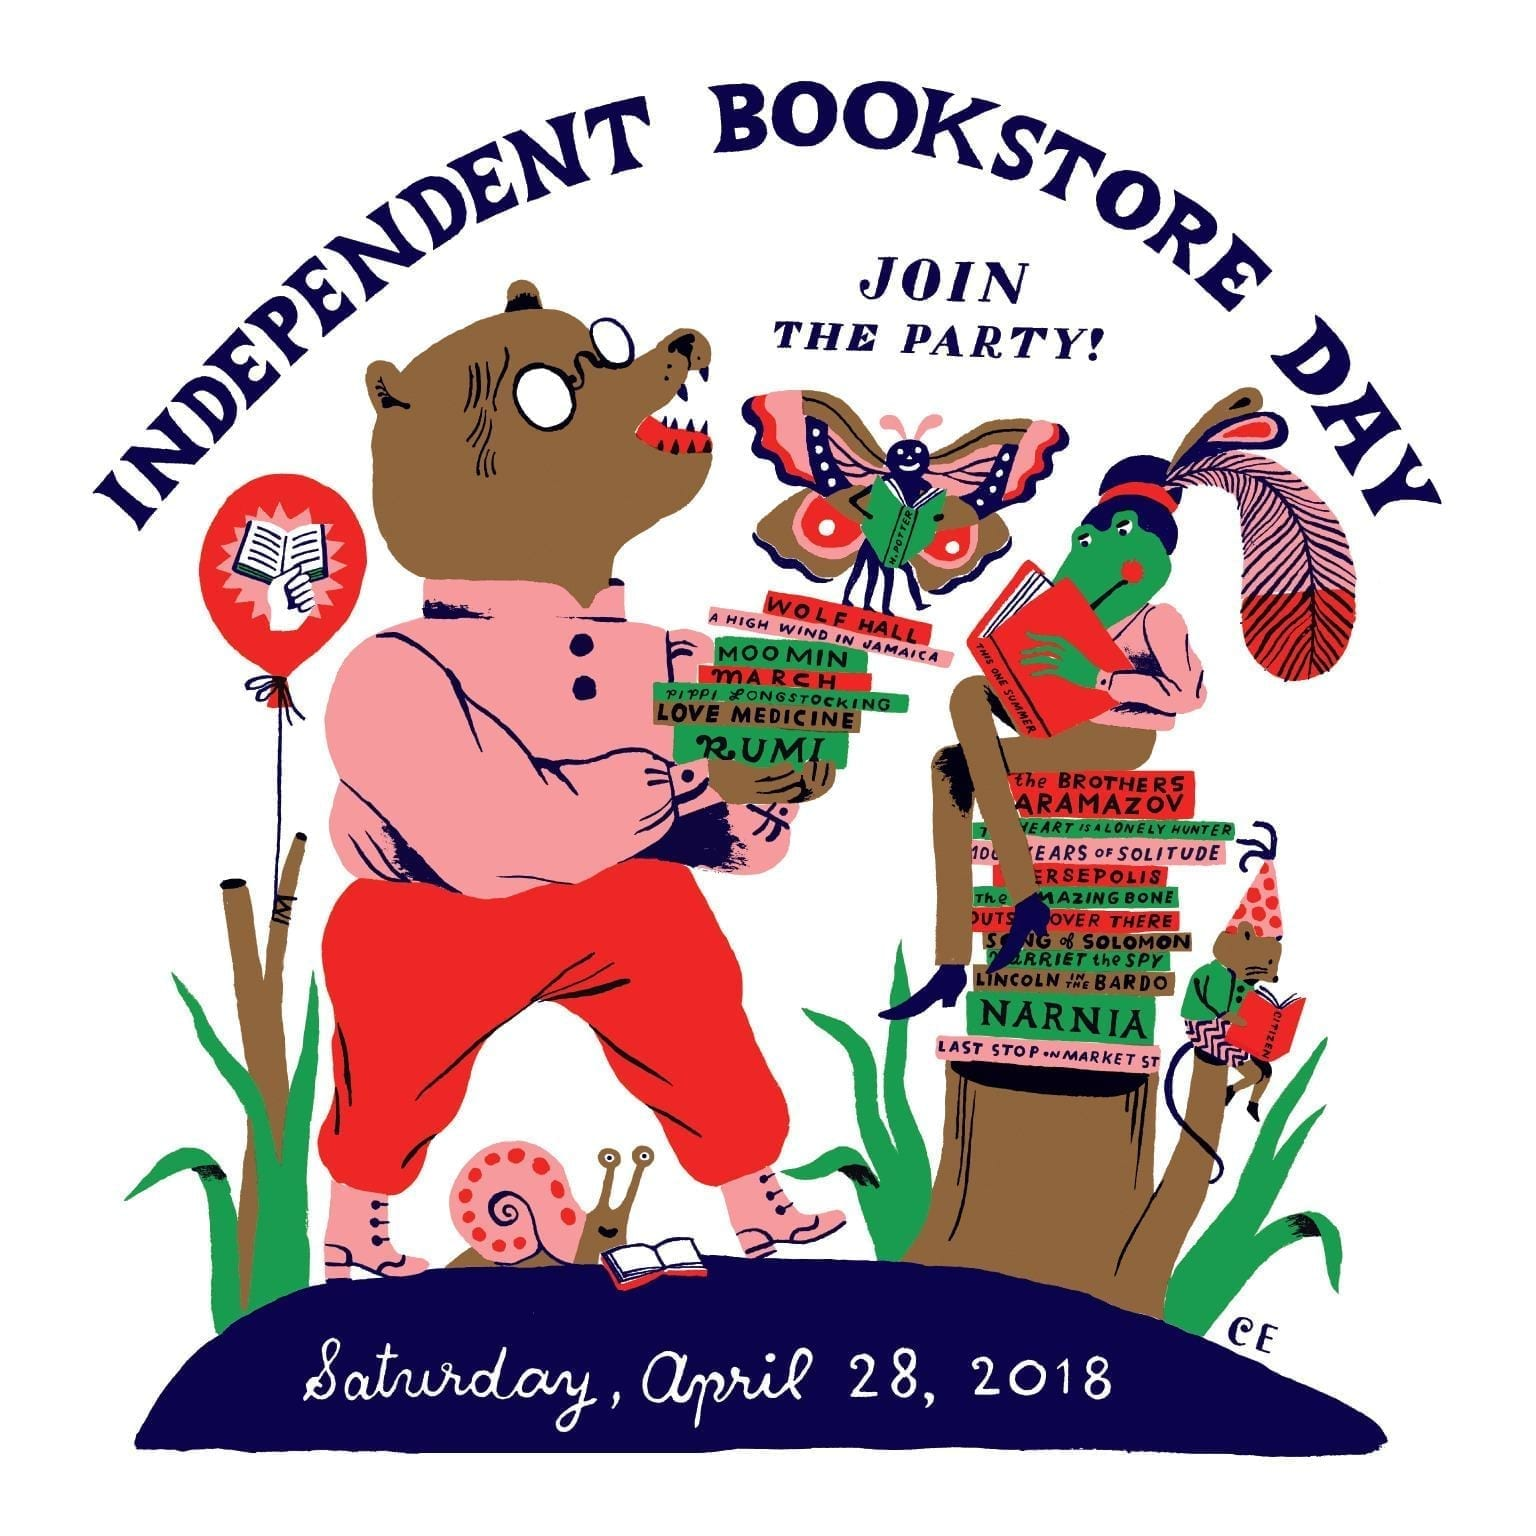 Today is Independent Bookstore Day, when we celebrate the books, stores, and people that make book buying an experience, not a transaction. #IndieBookstoreDay #Books #Bookish #BookstoreDay